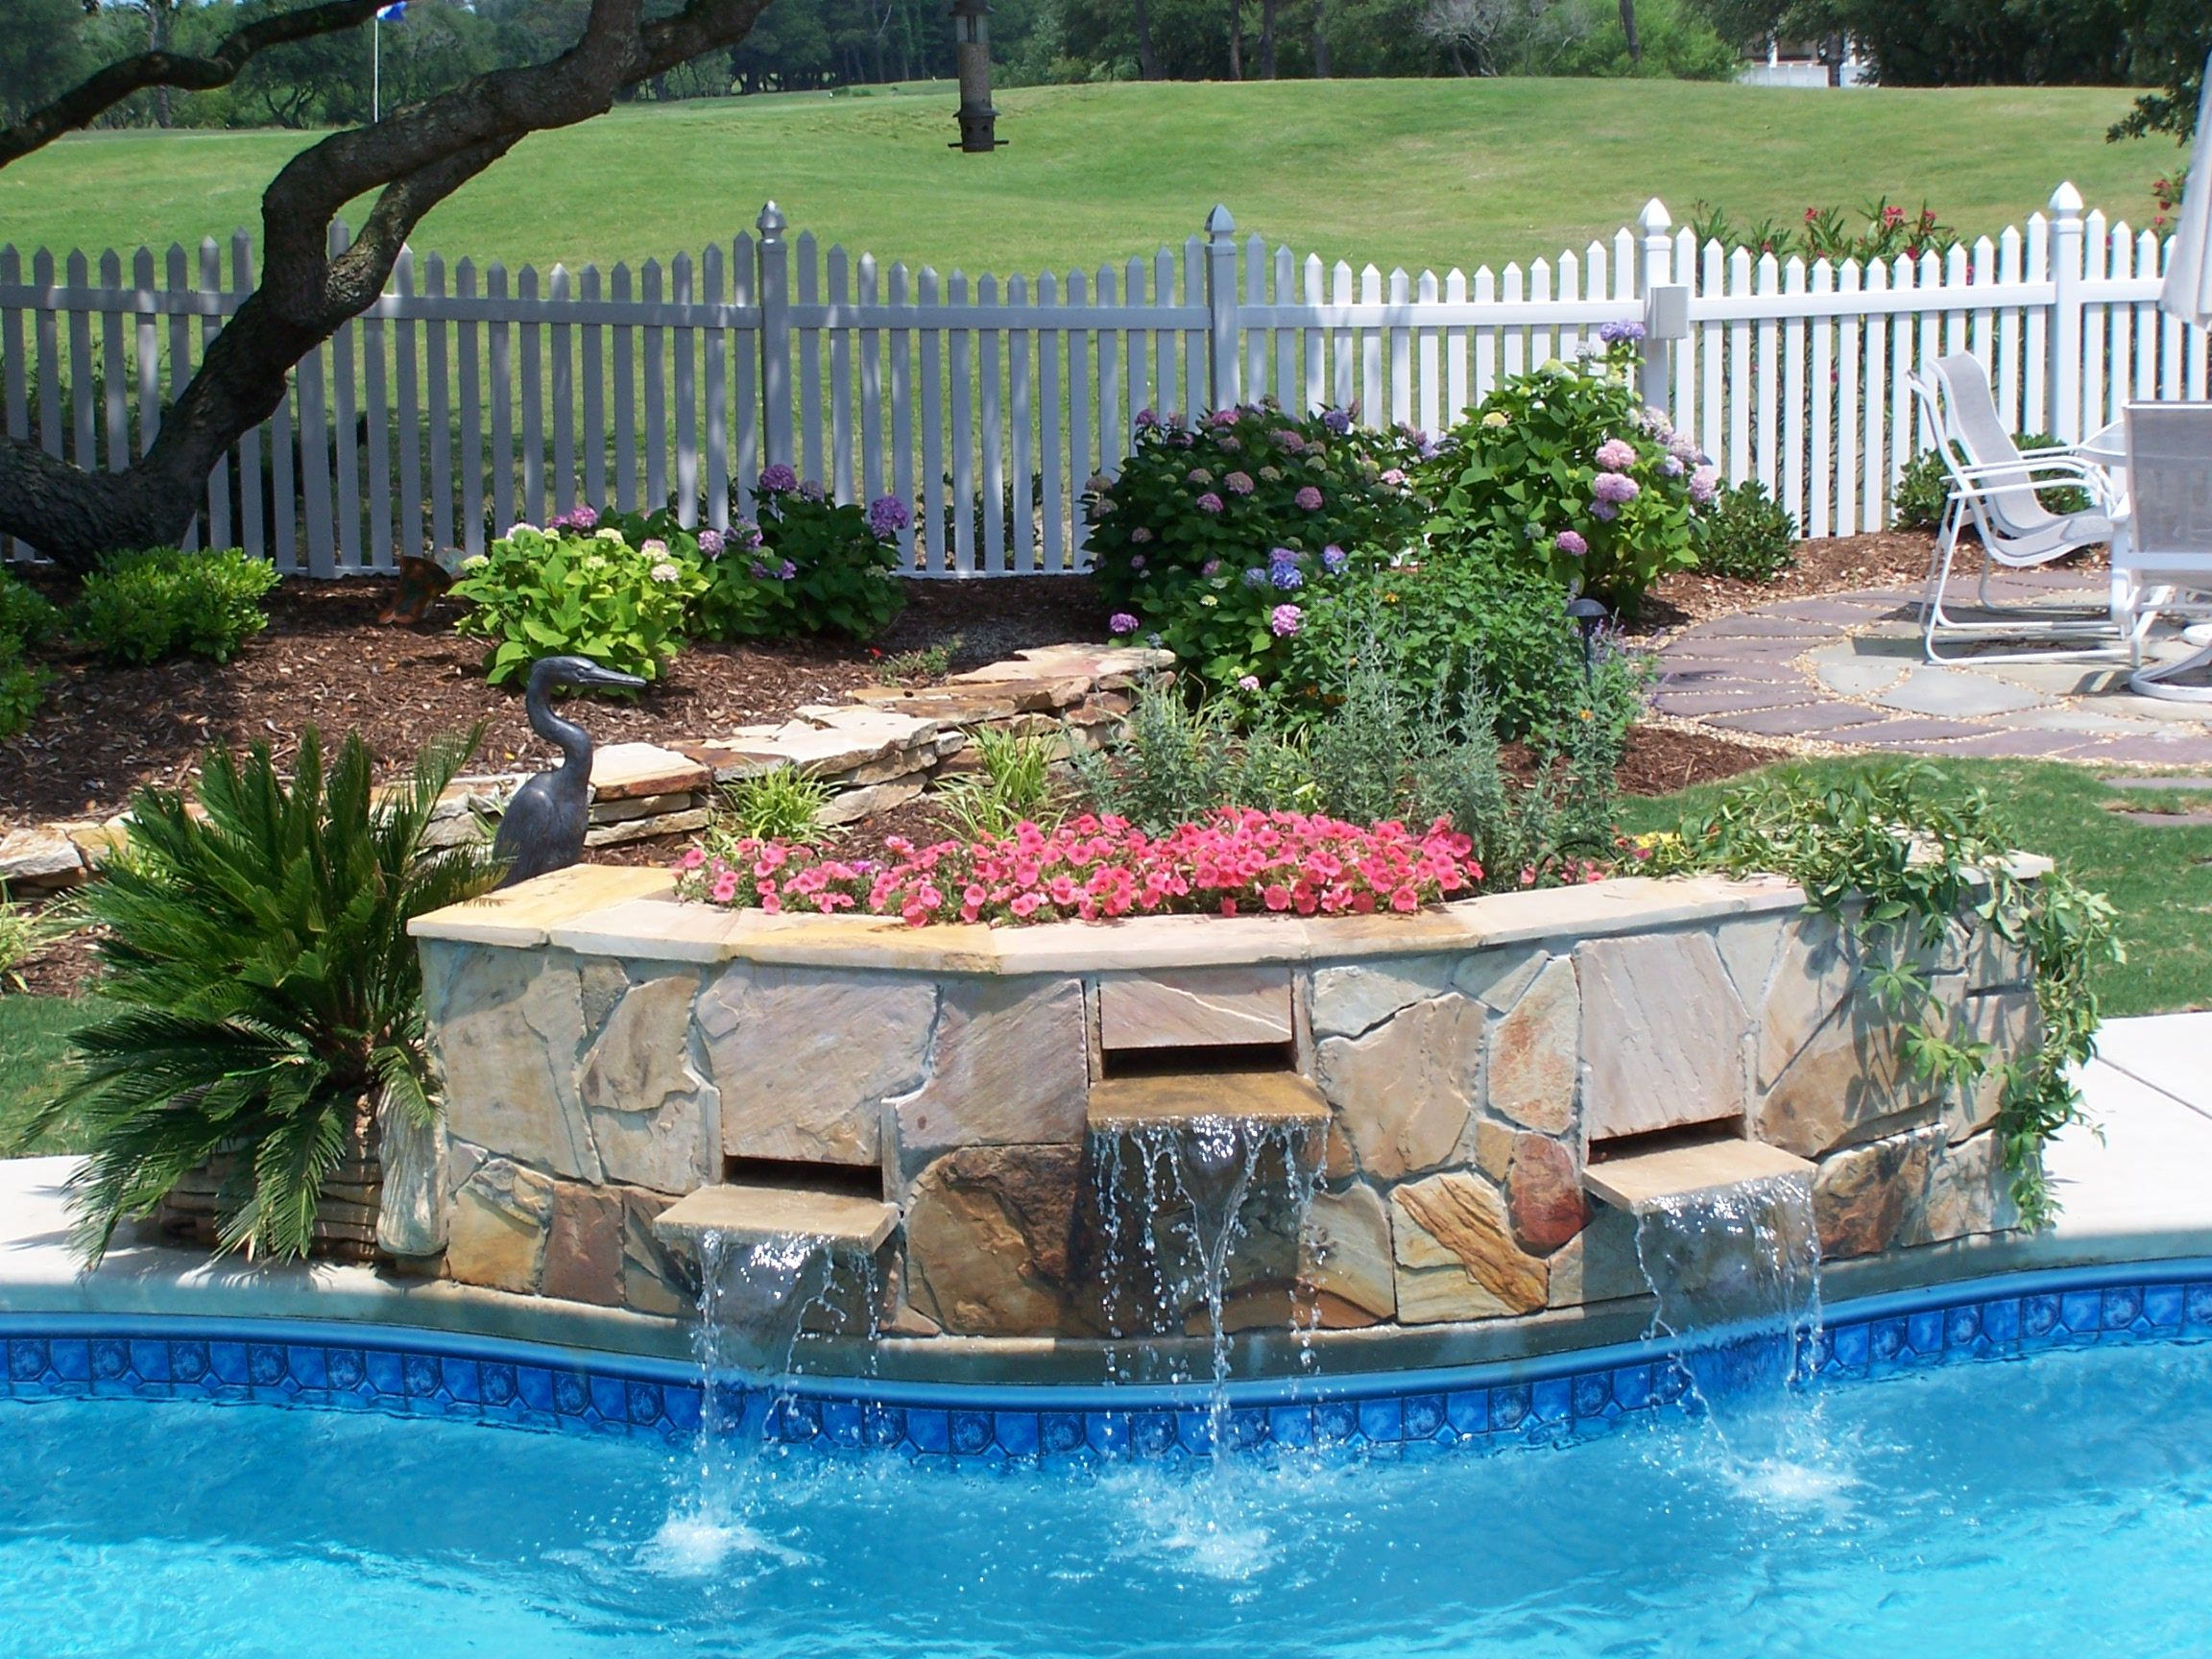 Pool Waterfall Planter Sandscapes Pool Waterfall Swimming Pool